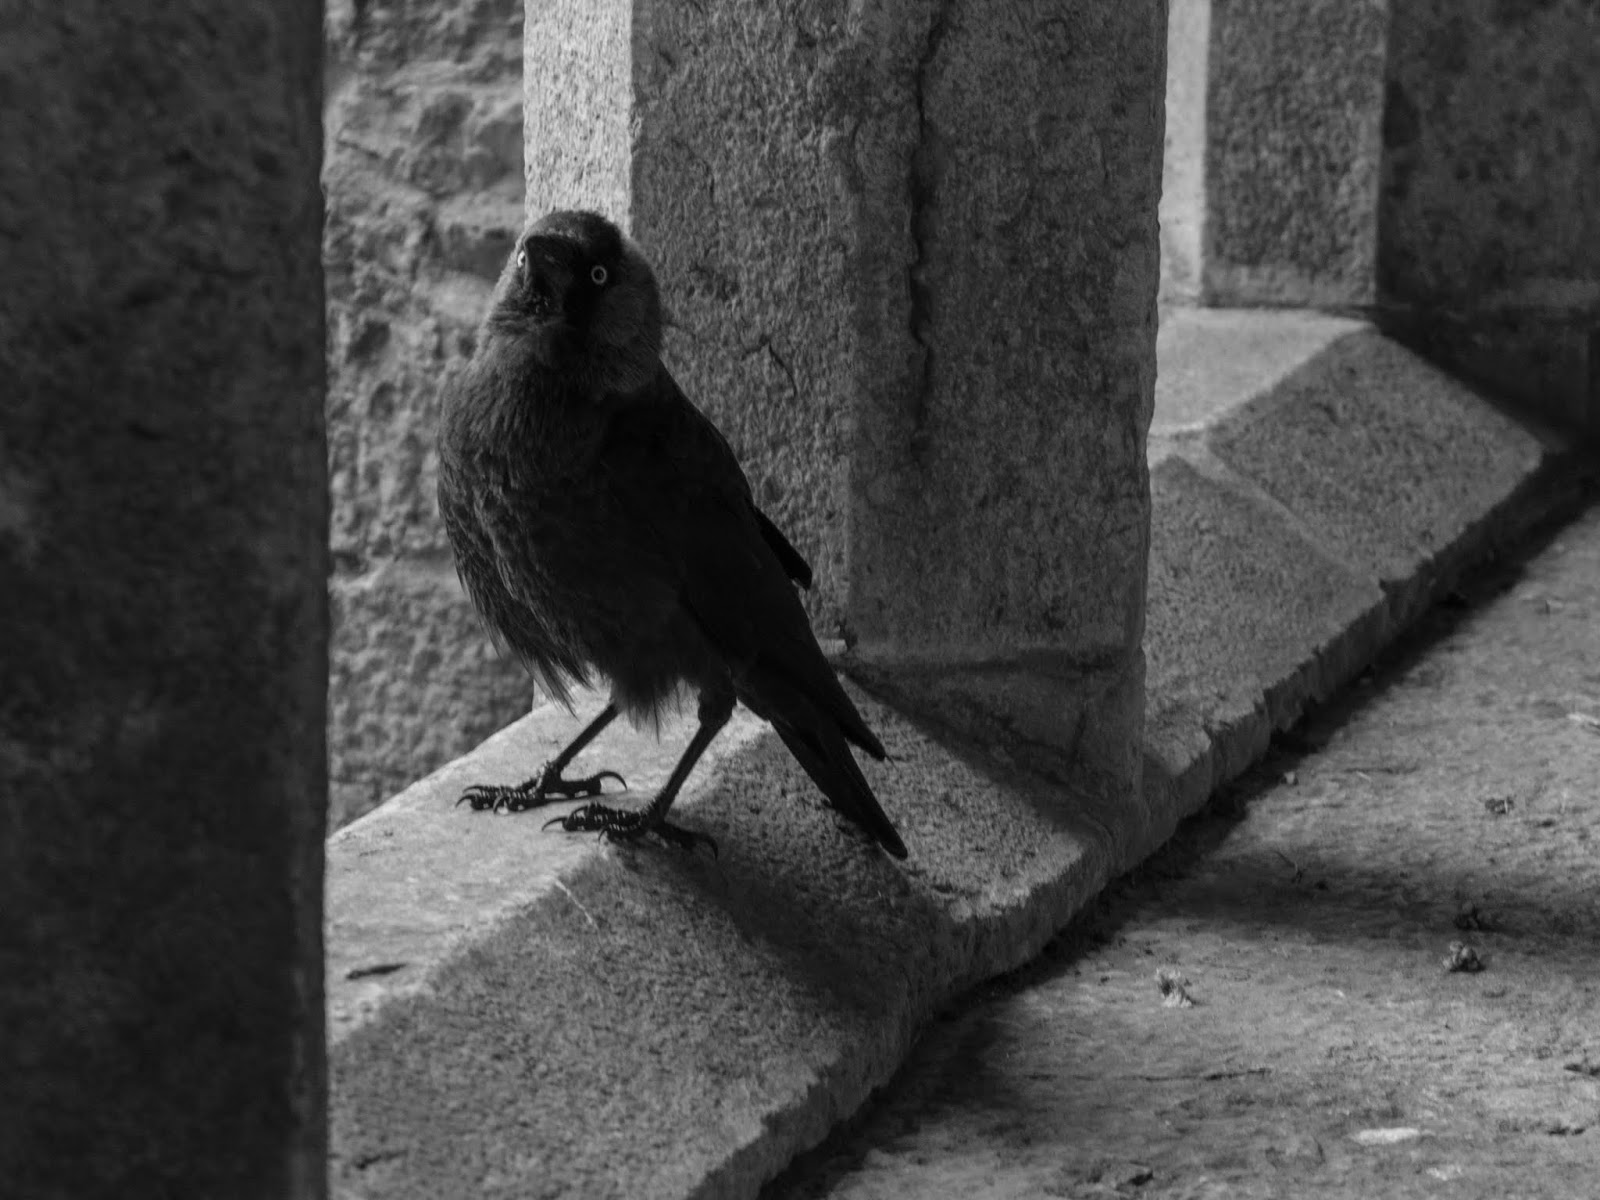 A crow sitting on a window ledge in an Augustinian Friary in Adare, Co.Limerick.